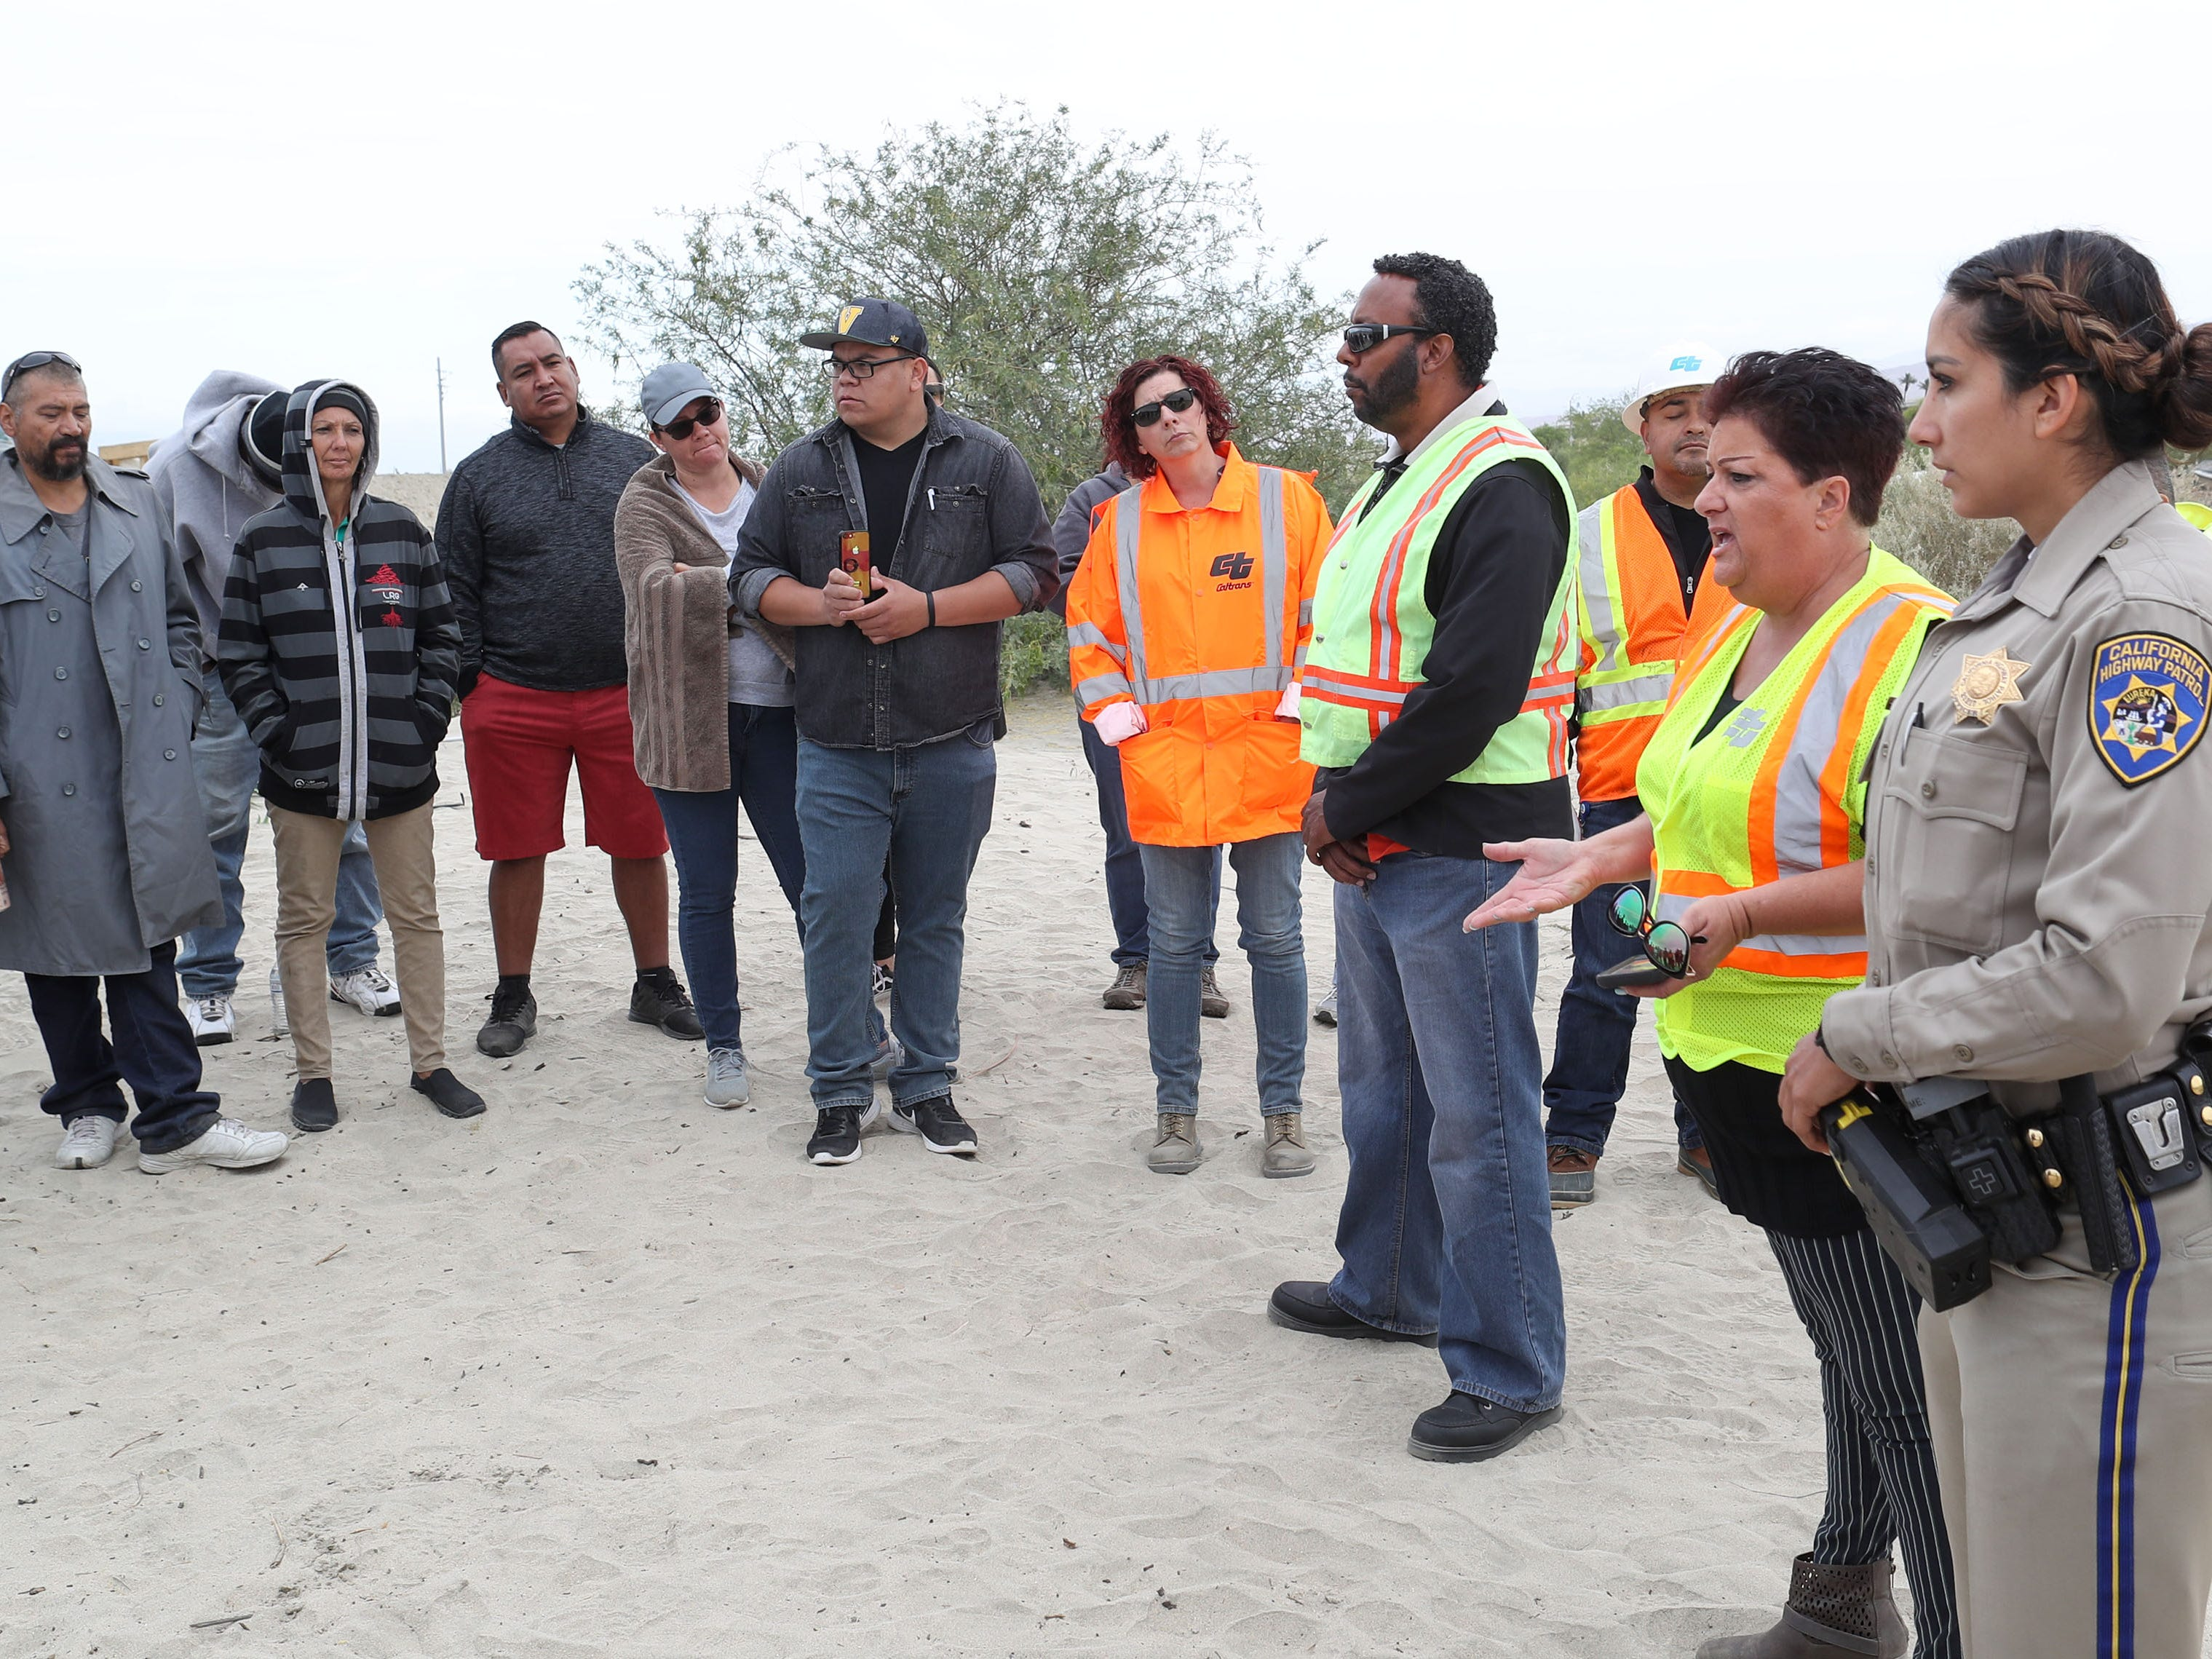 Caltrans spokeswoman Terri Casinga, second from right, informs those living at the Coachella encampment that they will have to leave the property, May 1, 2018.